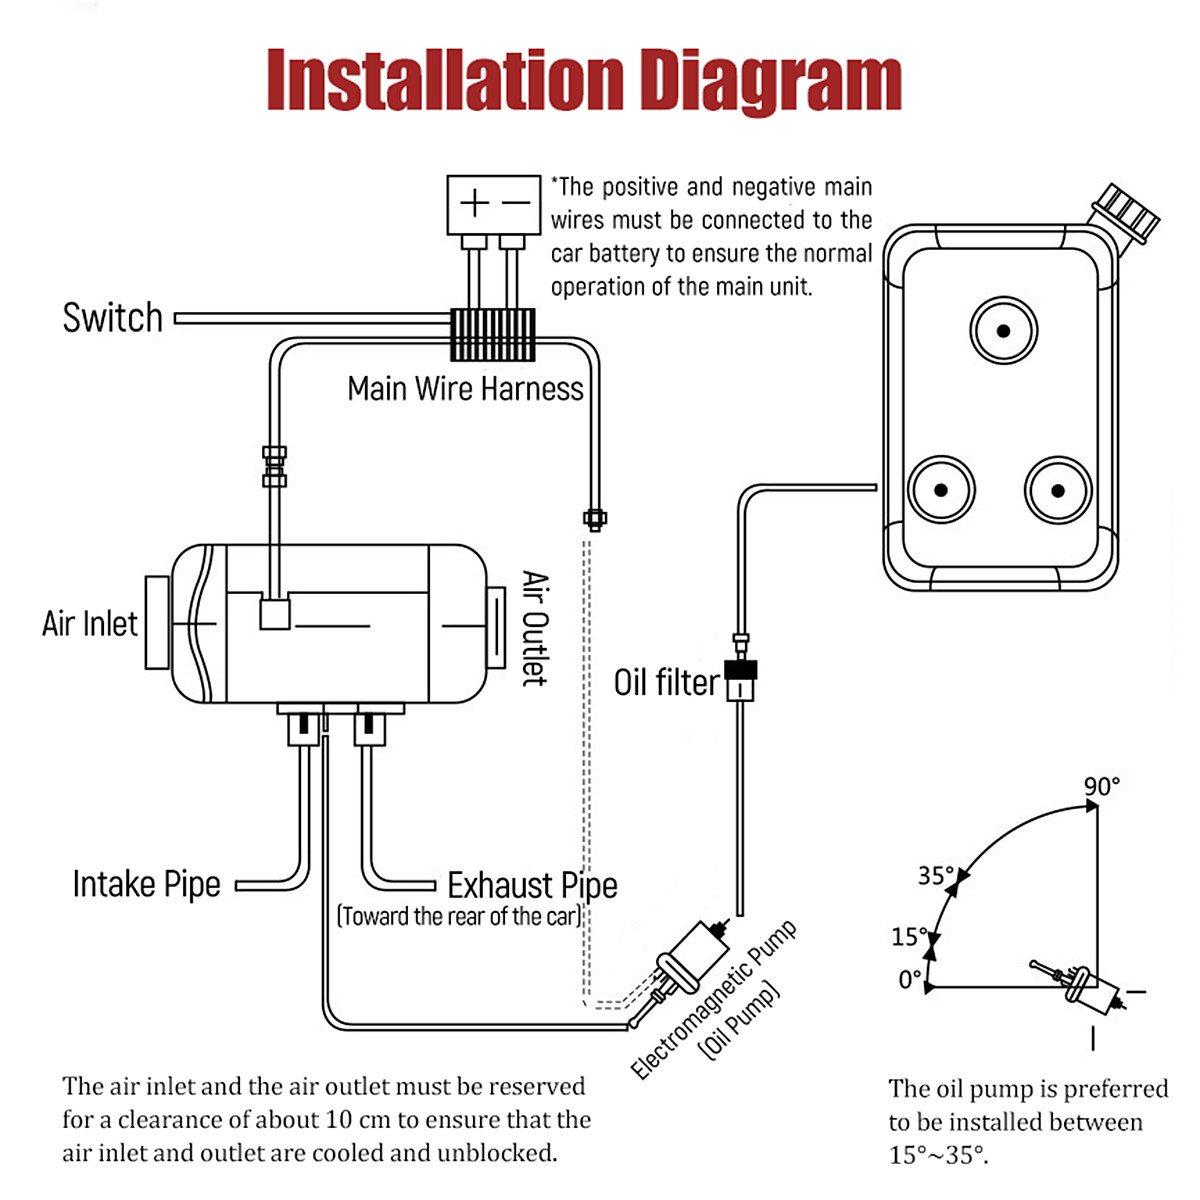 12v 5kw Diesel Air Heater Lcd Switch Remote 10l Tank F Trucks Car That Wiring Diagram Is Identical To What Viair Has On Their Website Detail Image